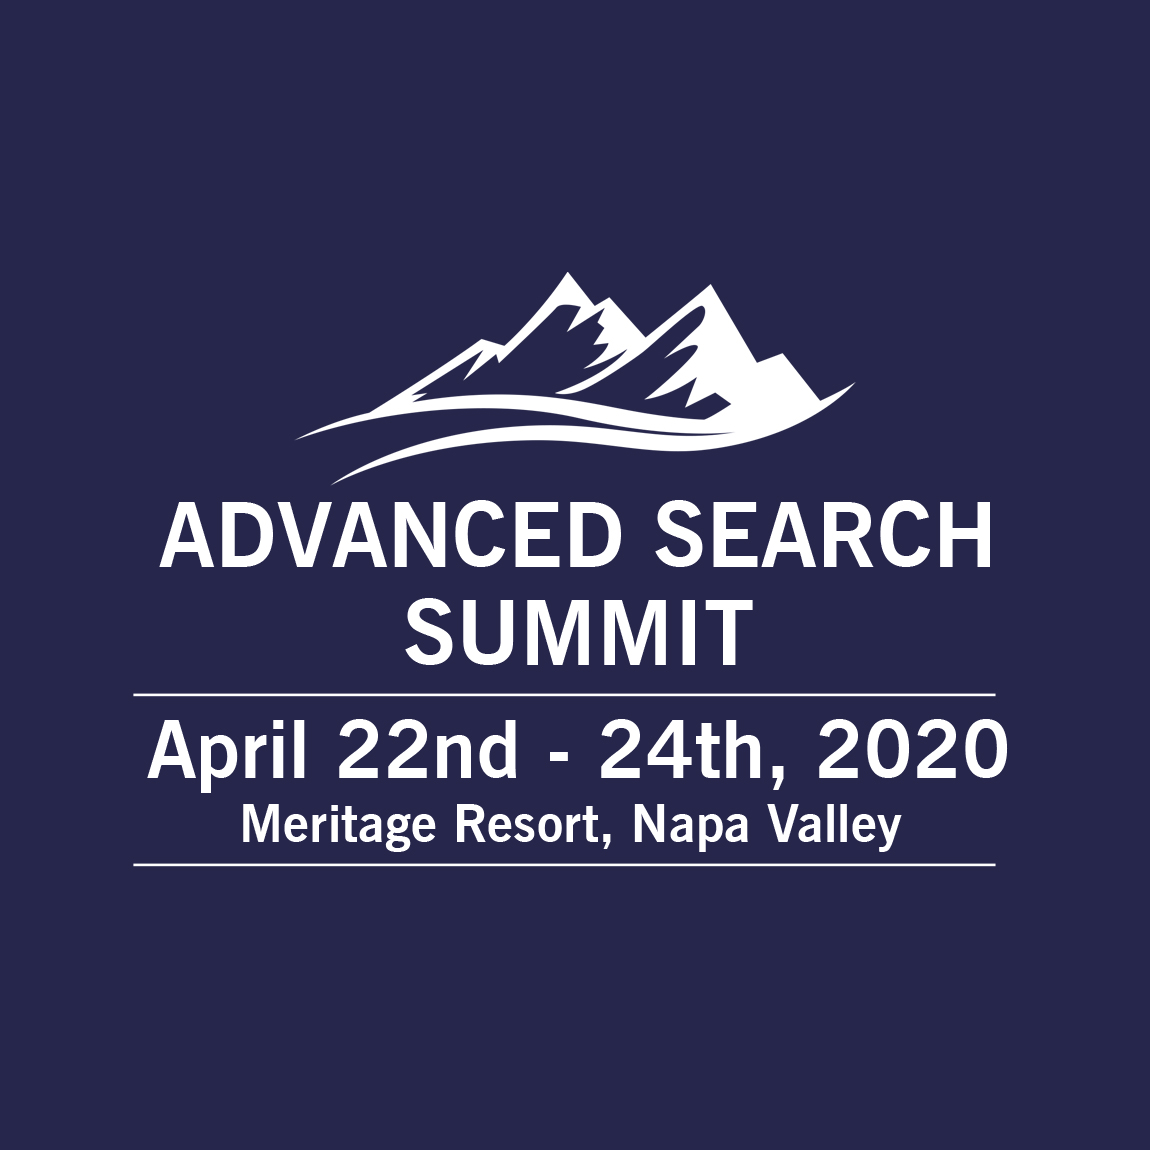 Advanced Search Summit